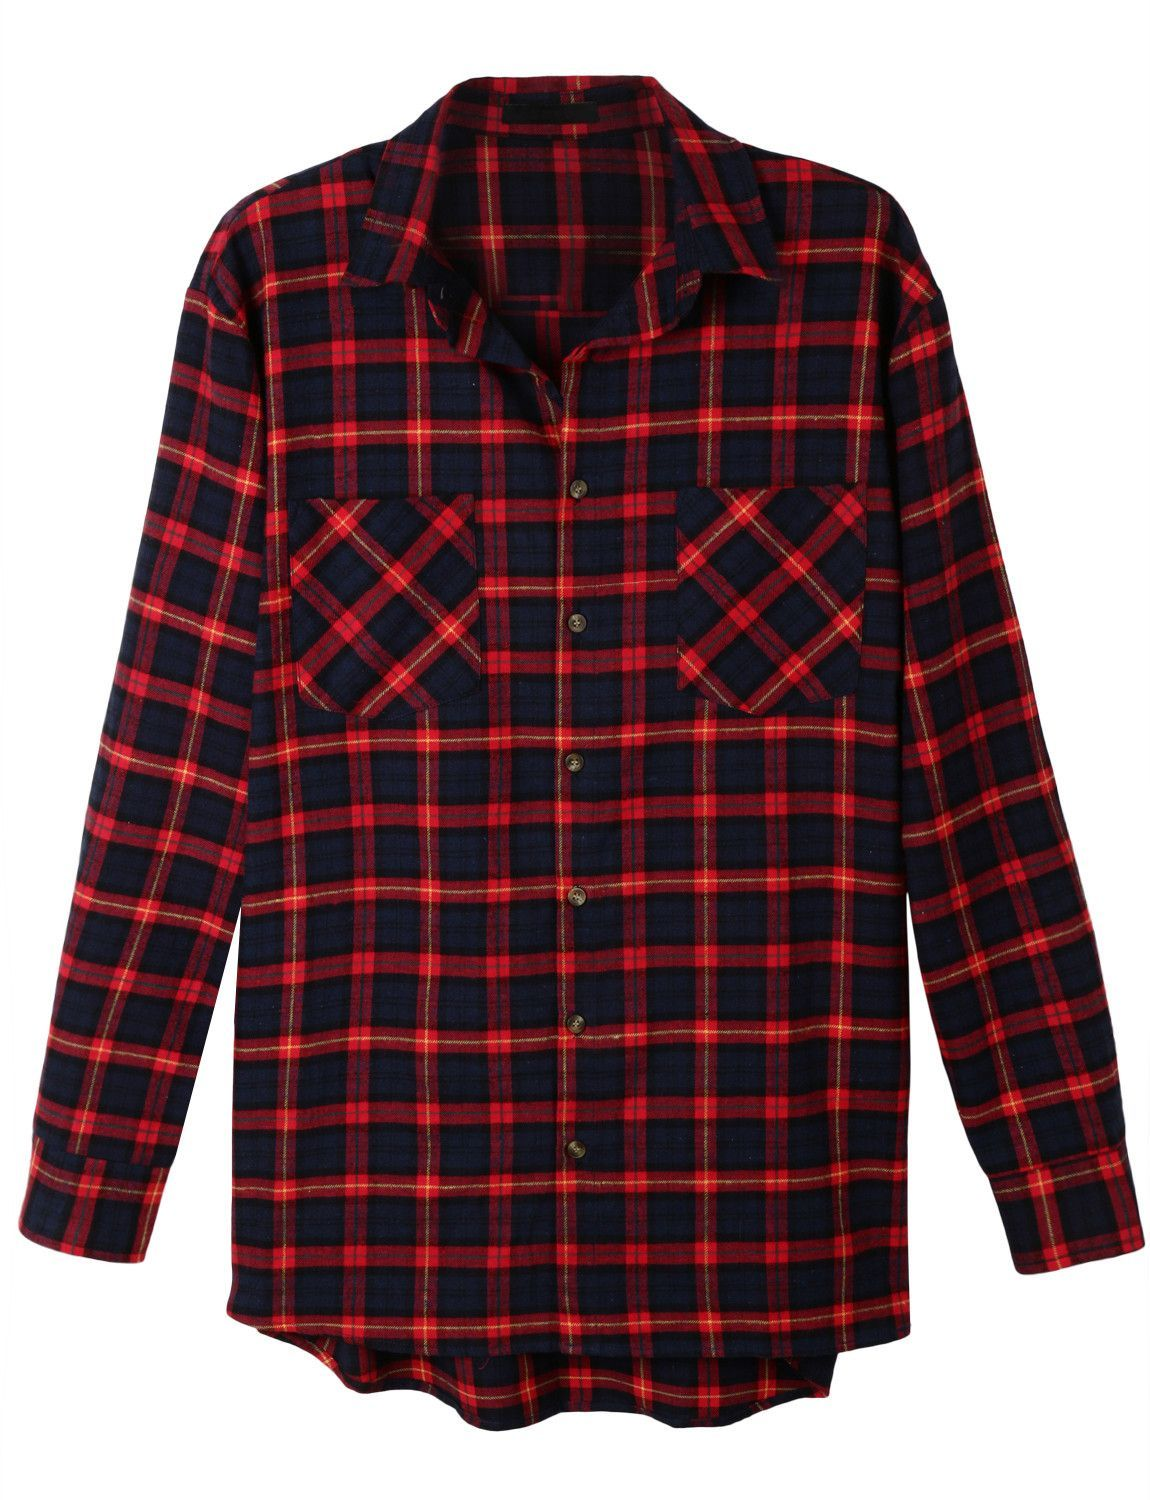 To acquire How to oversized wear plaid shirt polyvore pictures trends